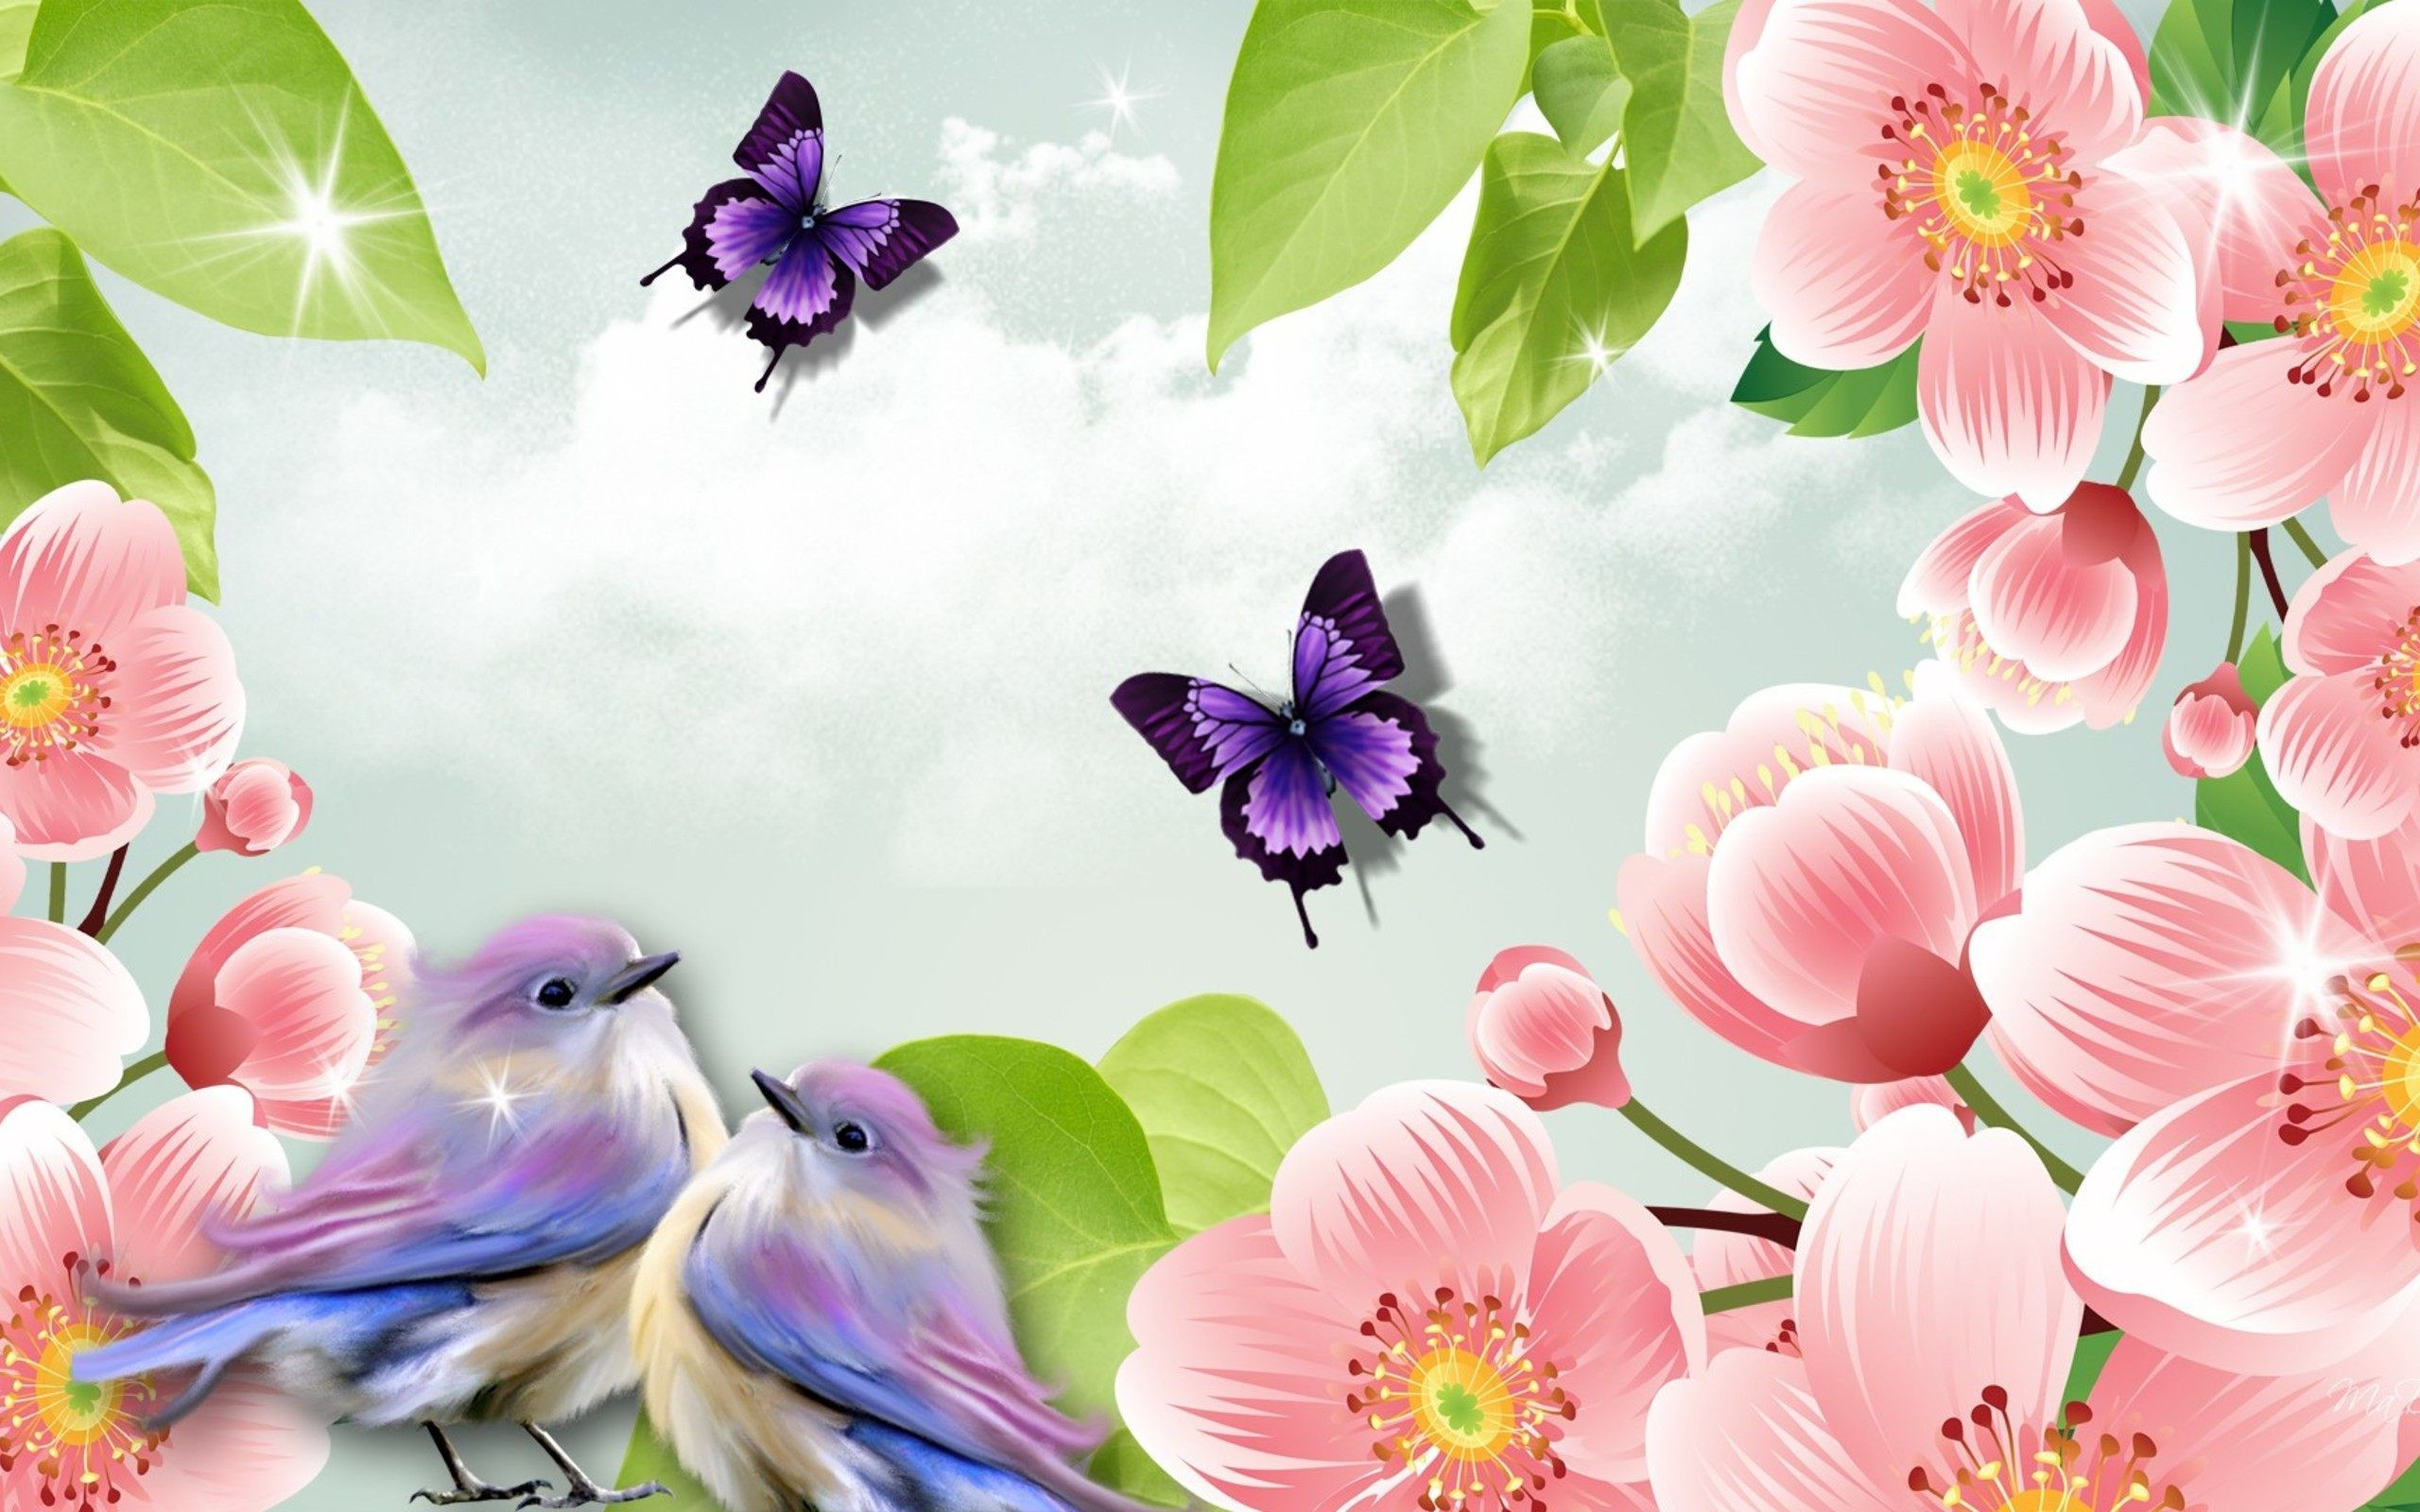 Beautiful Pictures Of Flowers And Butterflies Birds Wallpaper Birds And Flowers 61 43 Images